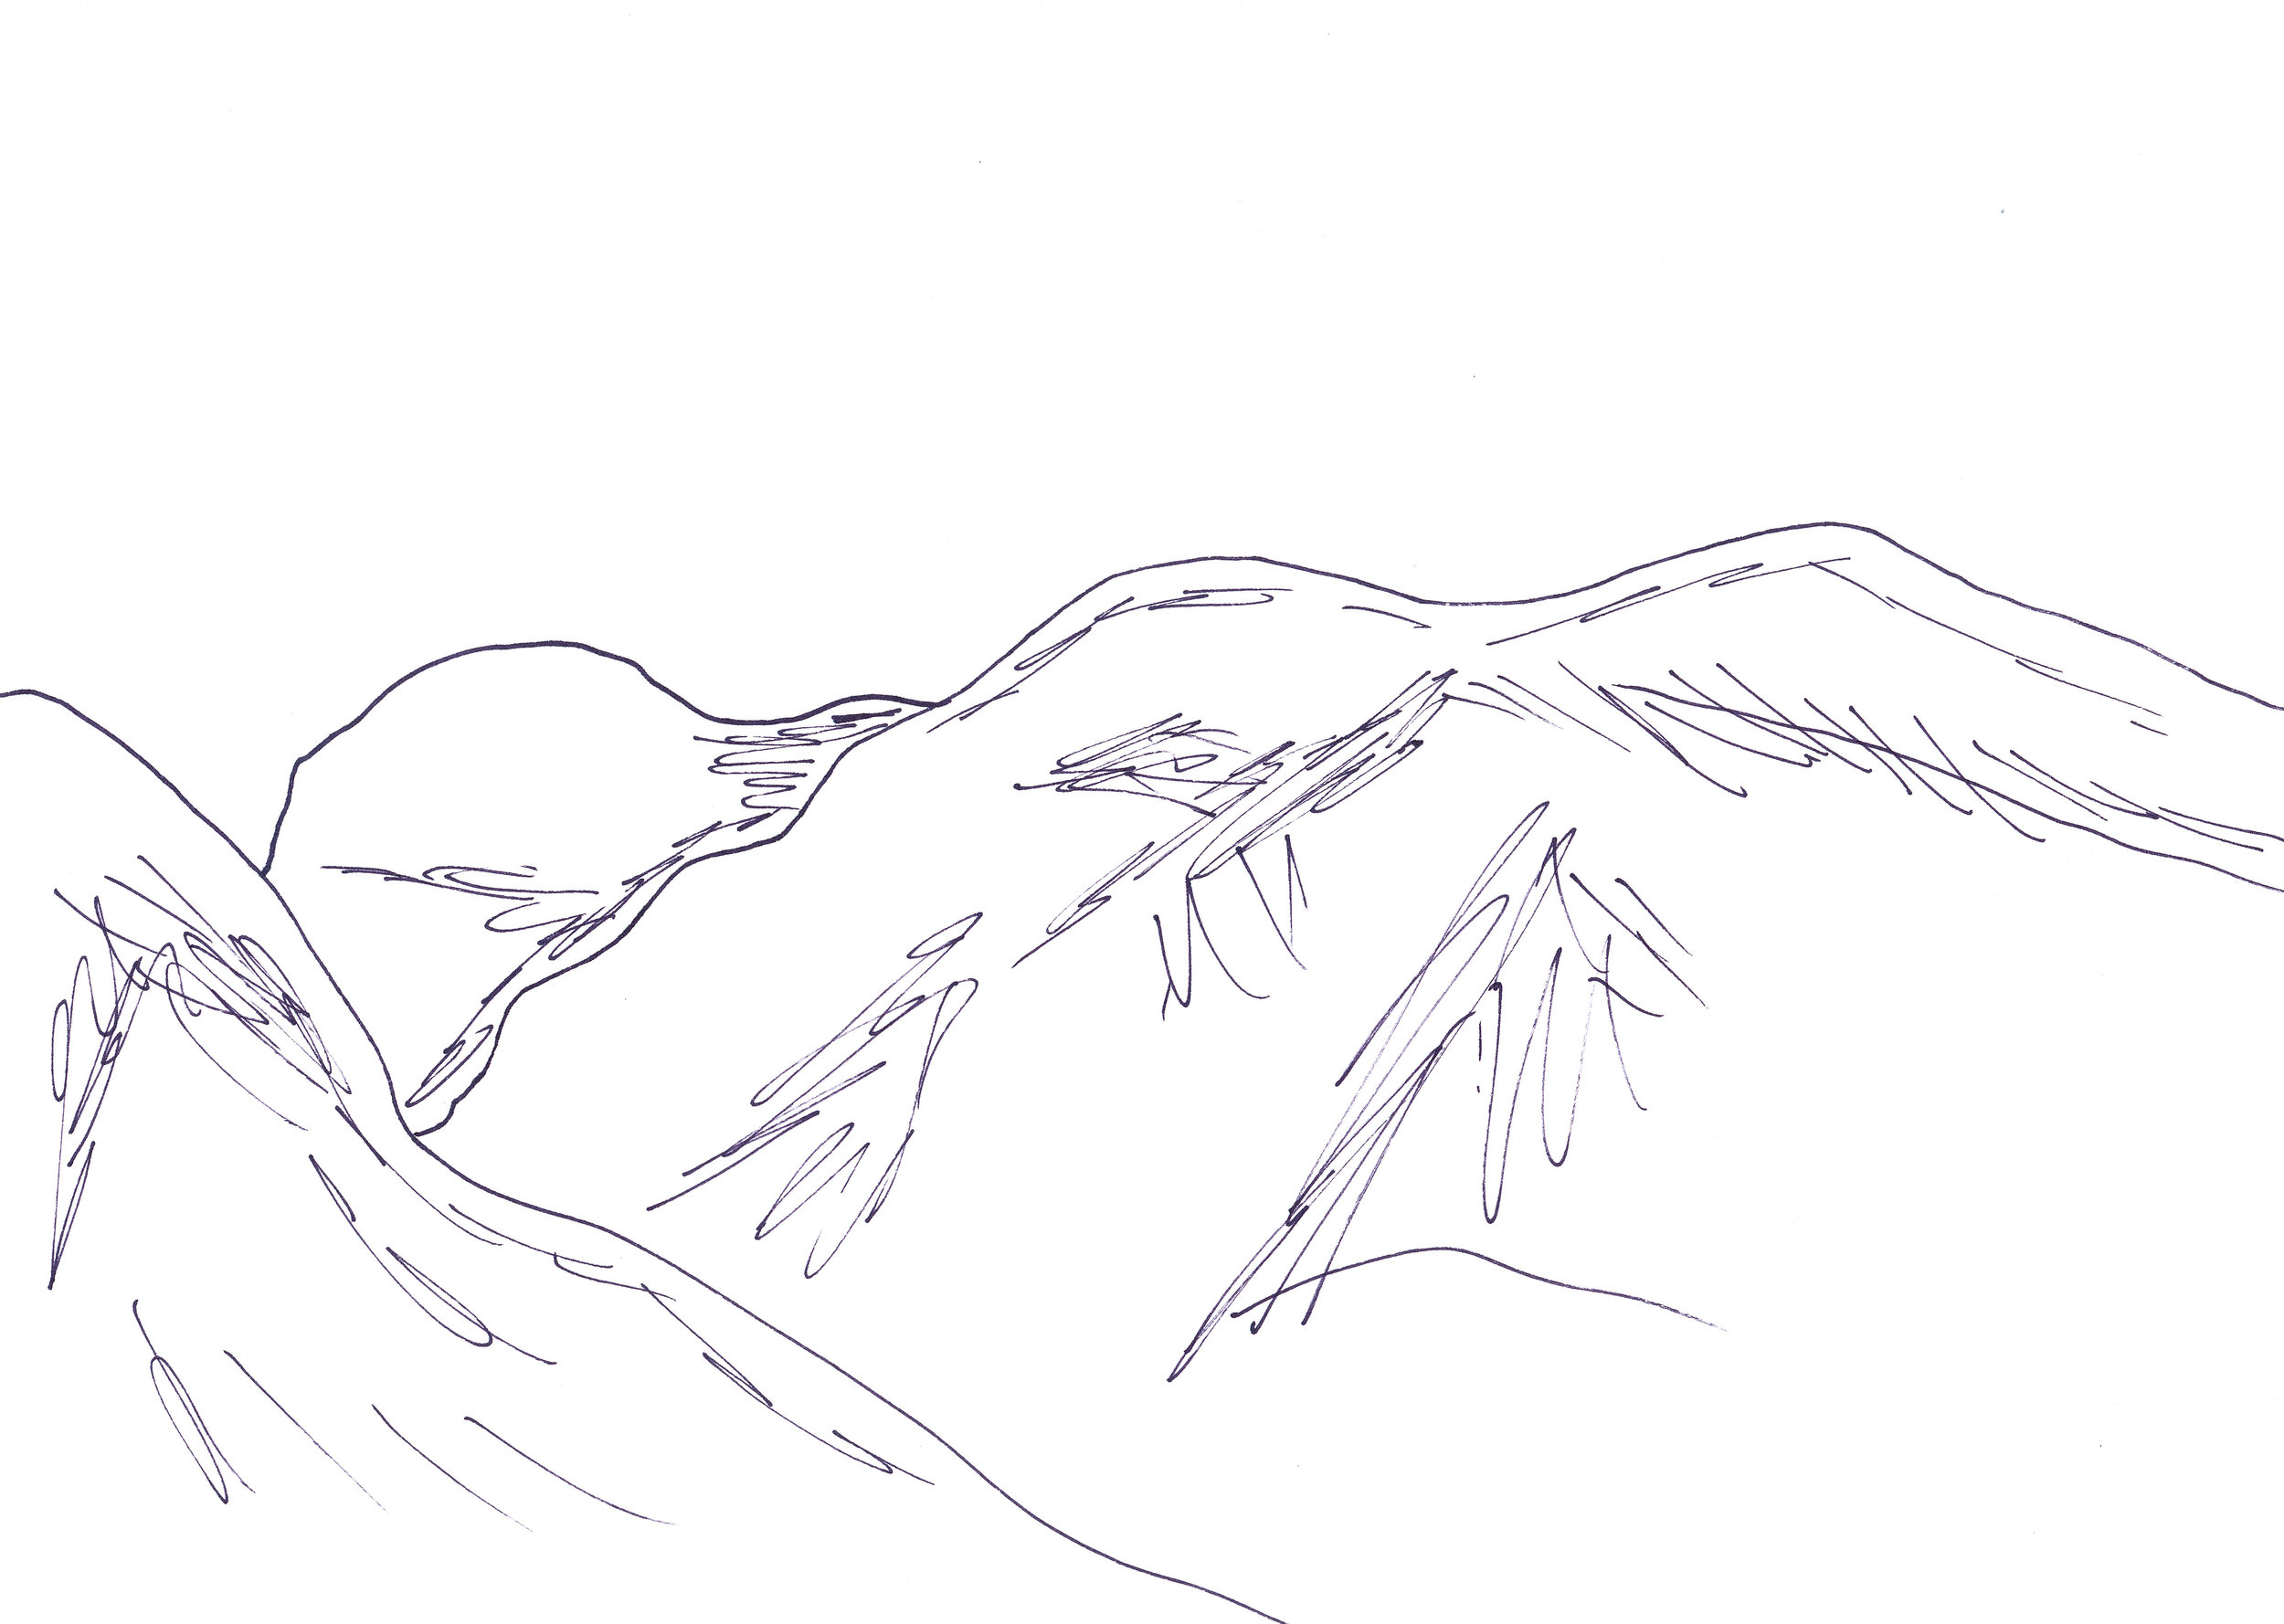 Sketches Canmore + Banff 2018.06.02 600 dpi_0003-2.jpg